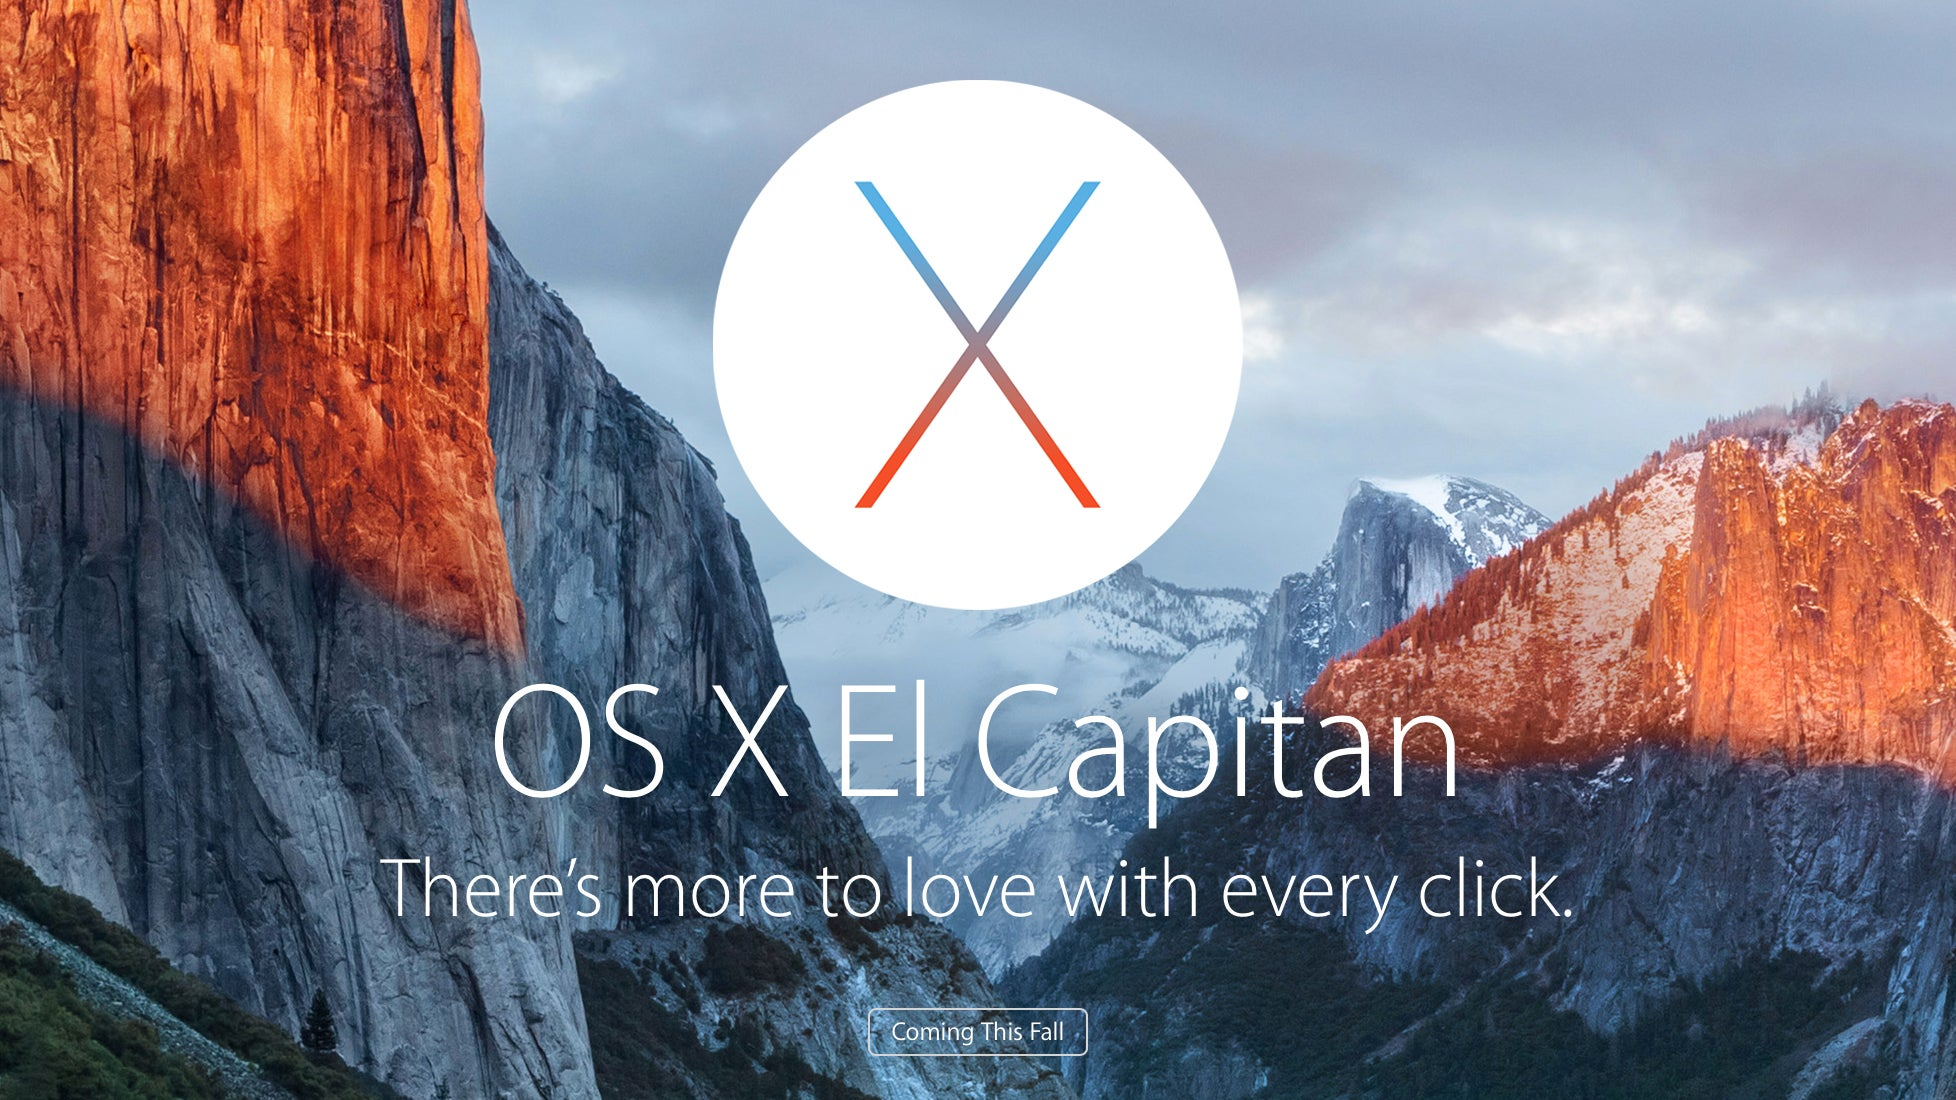 Hands-On With Apple's OS X El Capitan: Tiny Tweaks Make a Big Difference